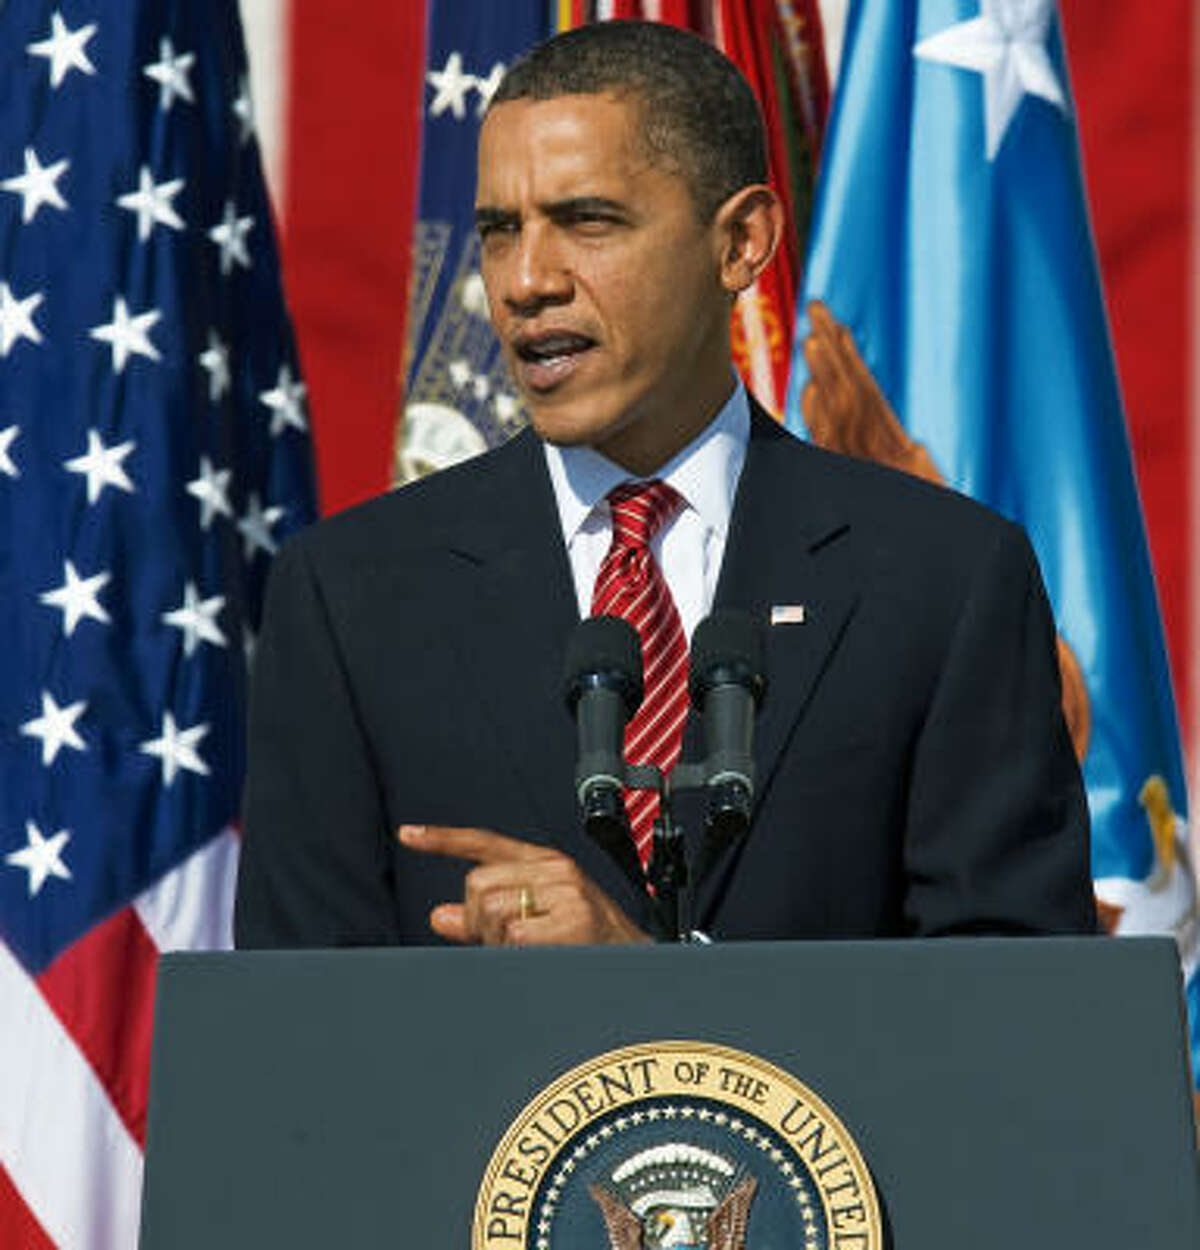 President Obama addresses the crowd at a memorial service for the 13 people killed in a shooting rampage at Fort Hood.